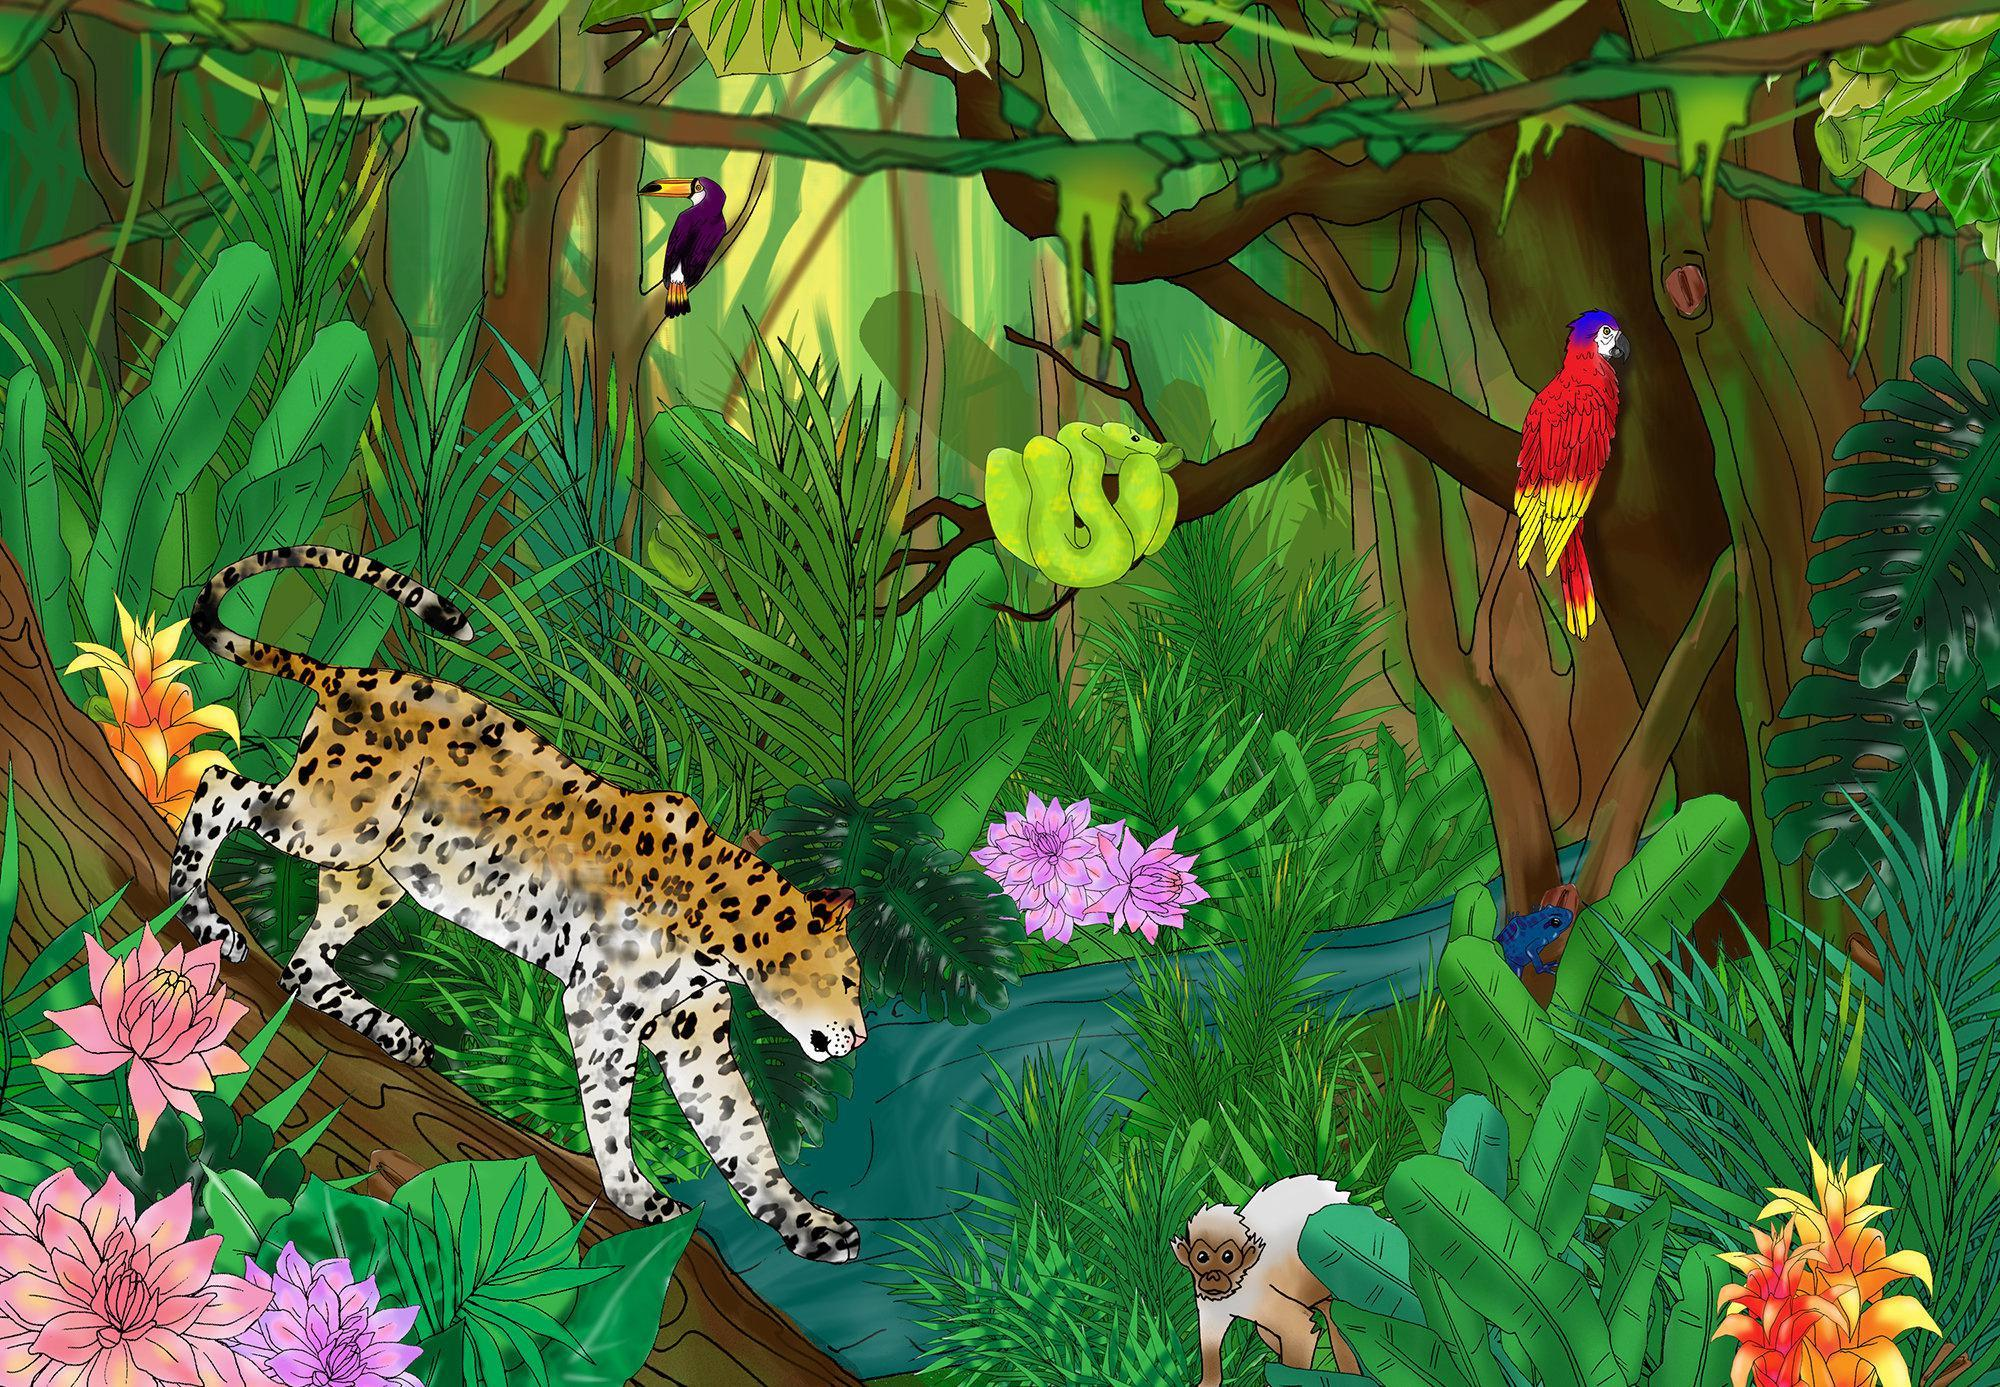 2000x1387 Can You Find The Coffee Beans In This Jungle Scene It Takes Most